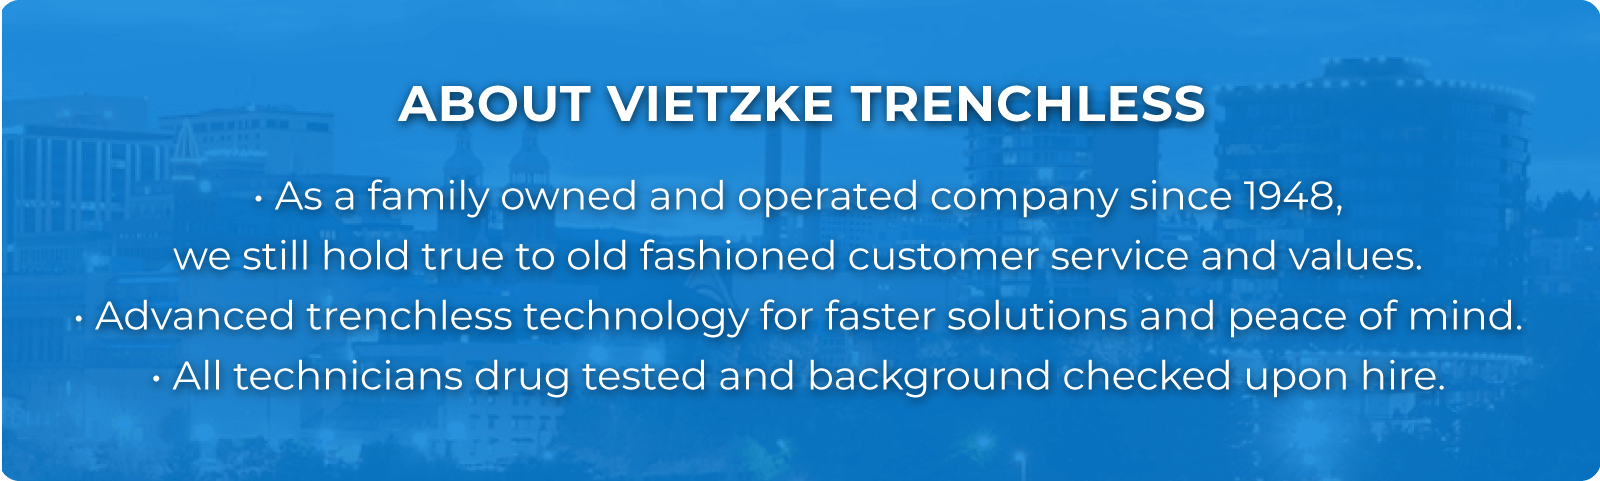 About viezke trenchless